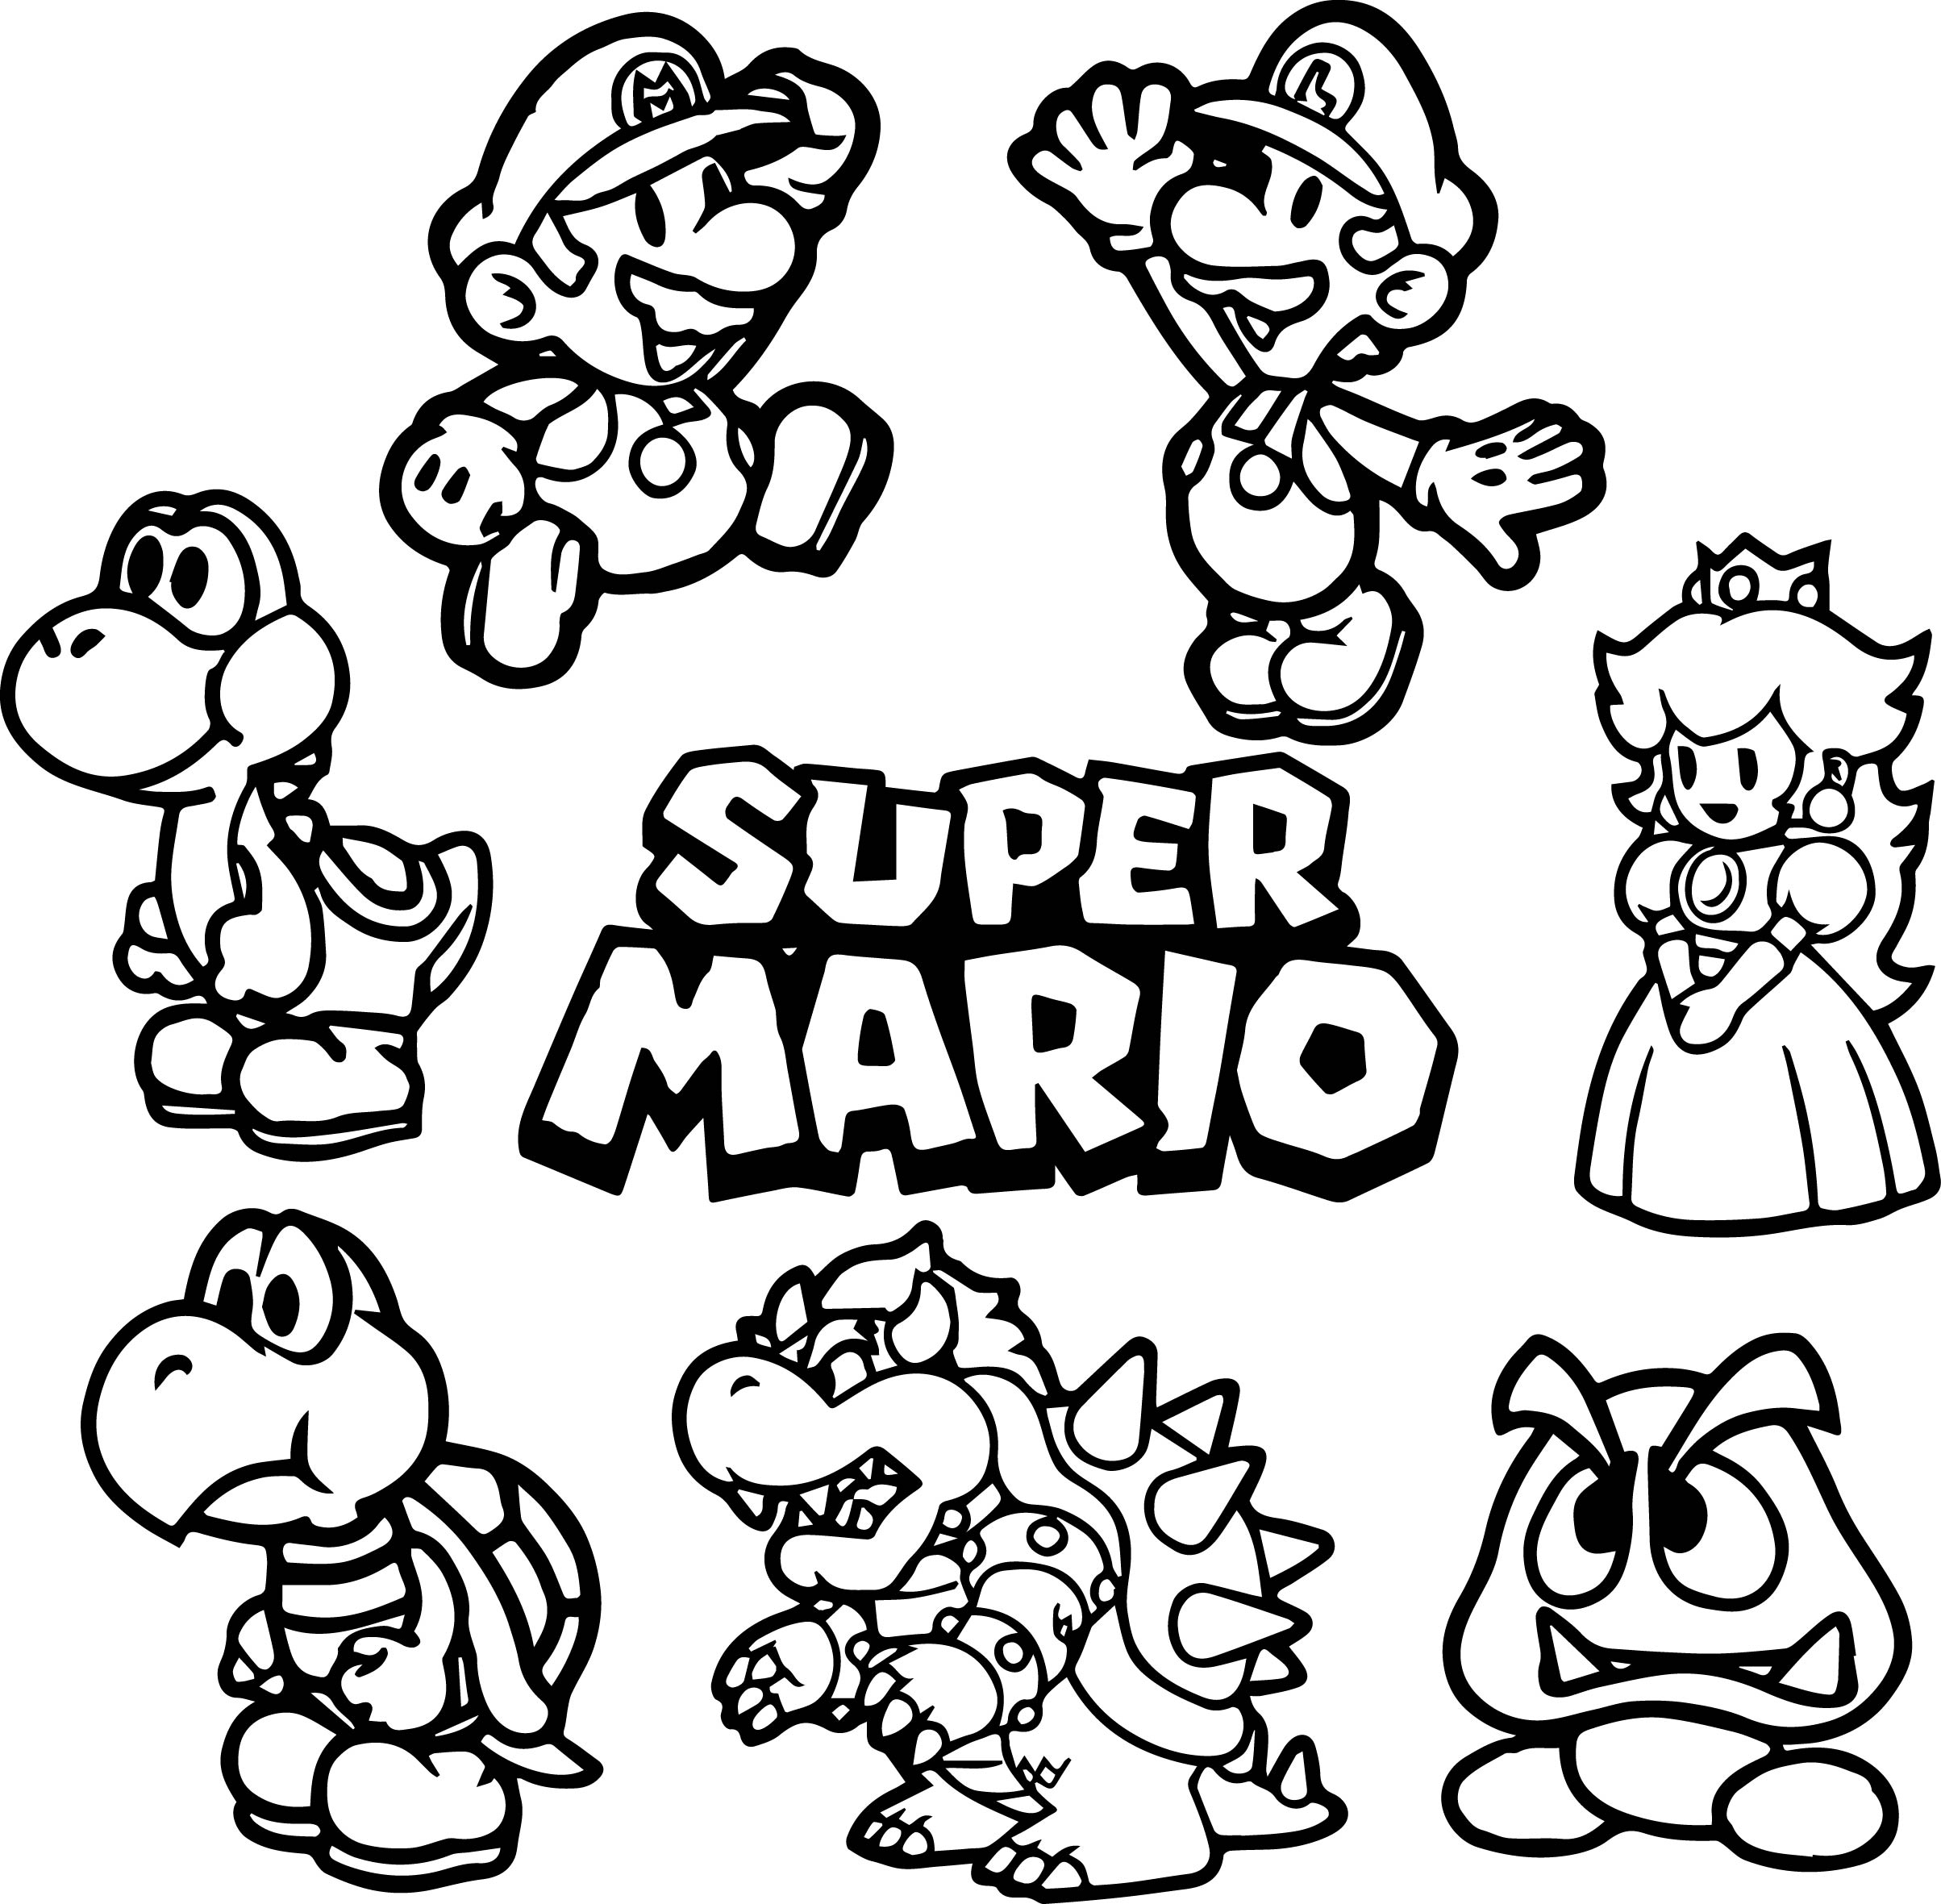 mega mario coloring pages - photo#35